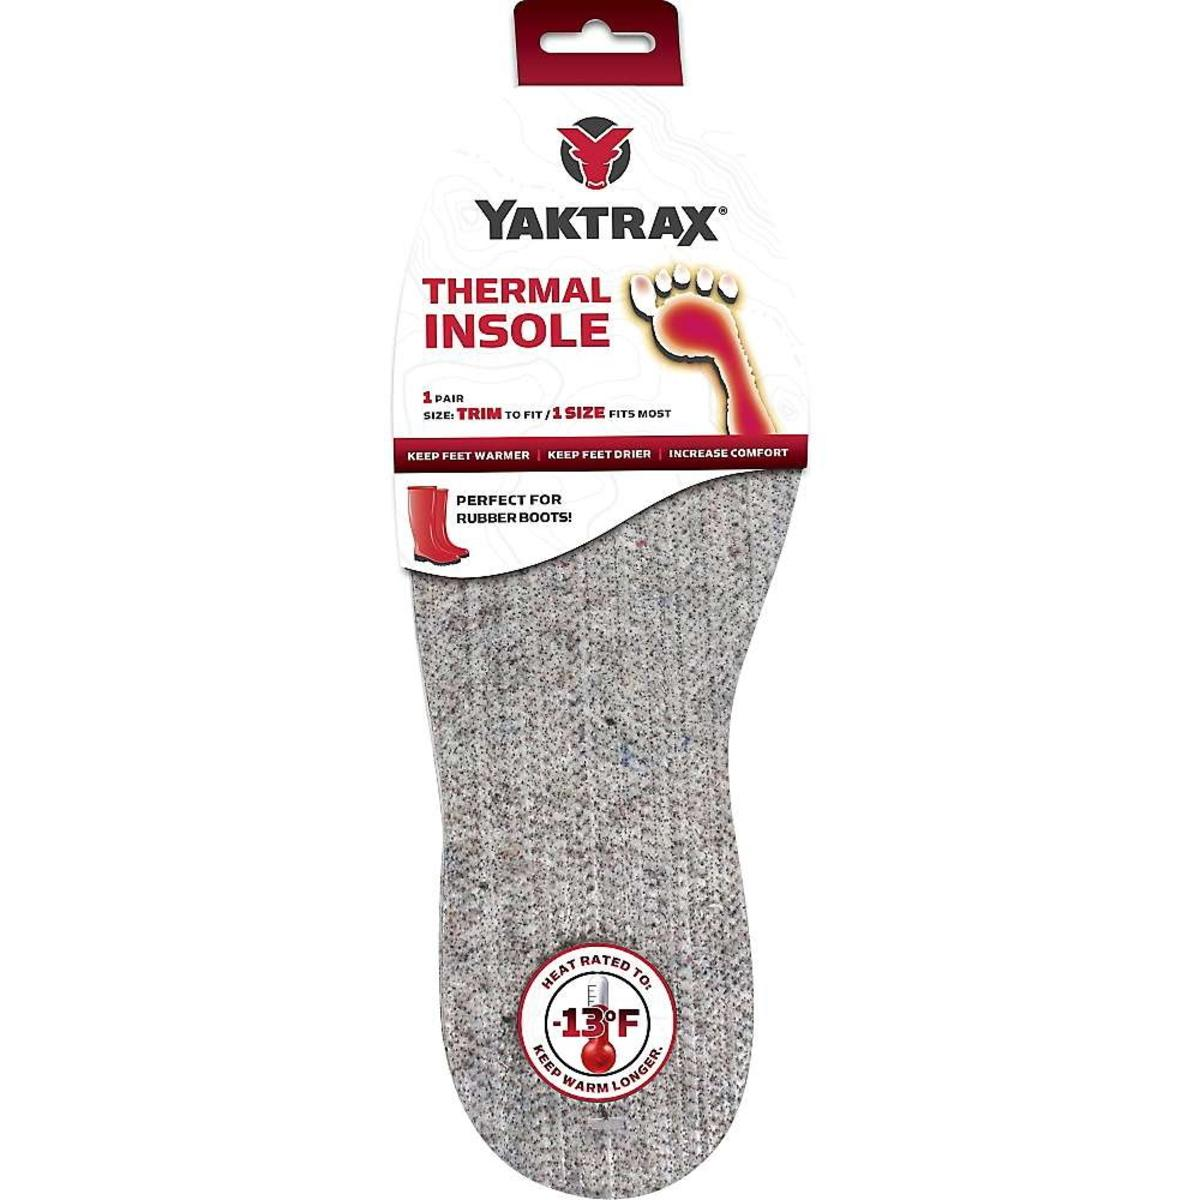 IMPLUS CORPORATION THERMAL INSOLE -